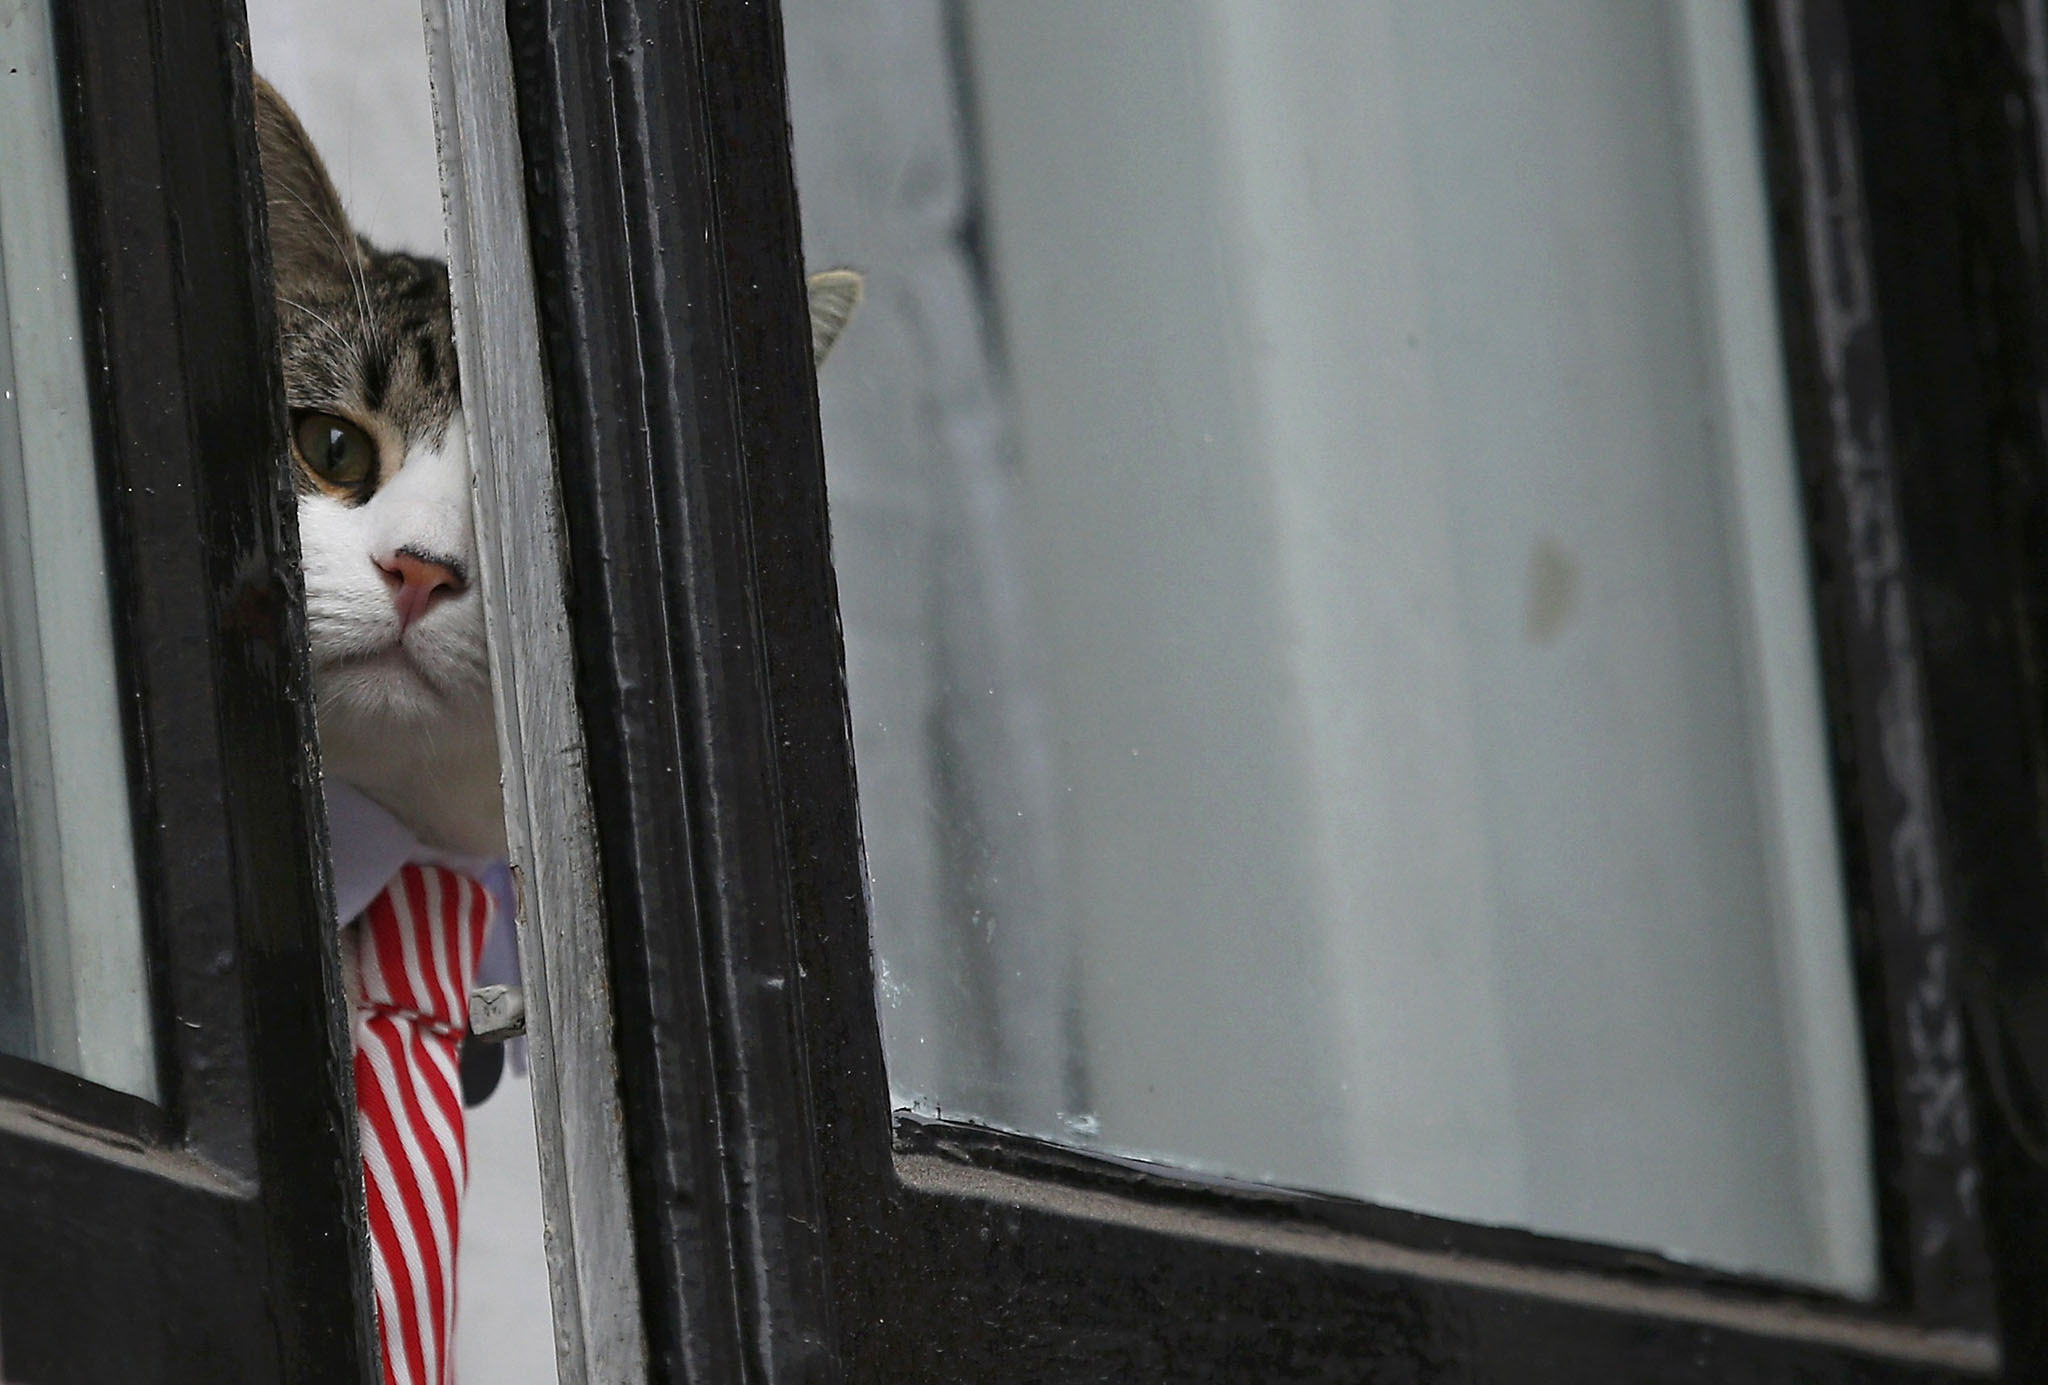 Julian Assange's cat sits at the window of Ecuador's embassy as prosecutor Ingrid Isgren from Sweden interviews Assange in London